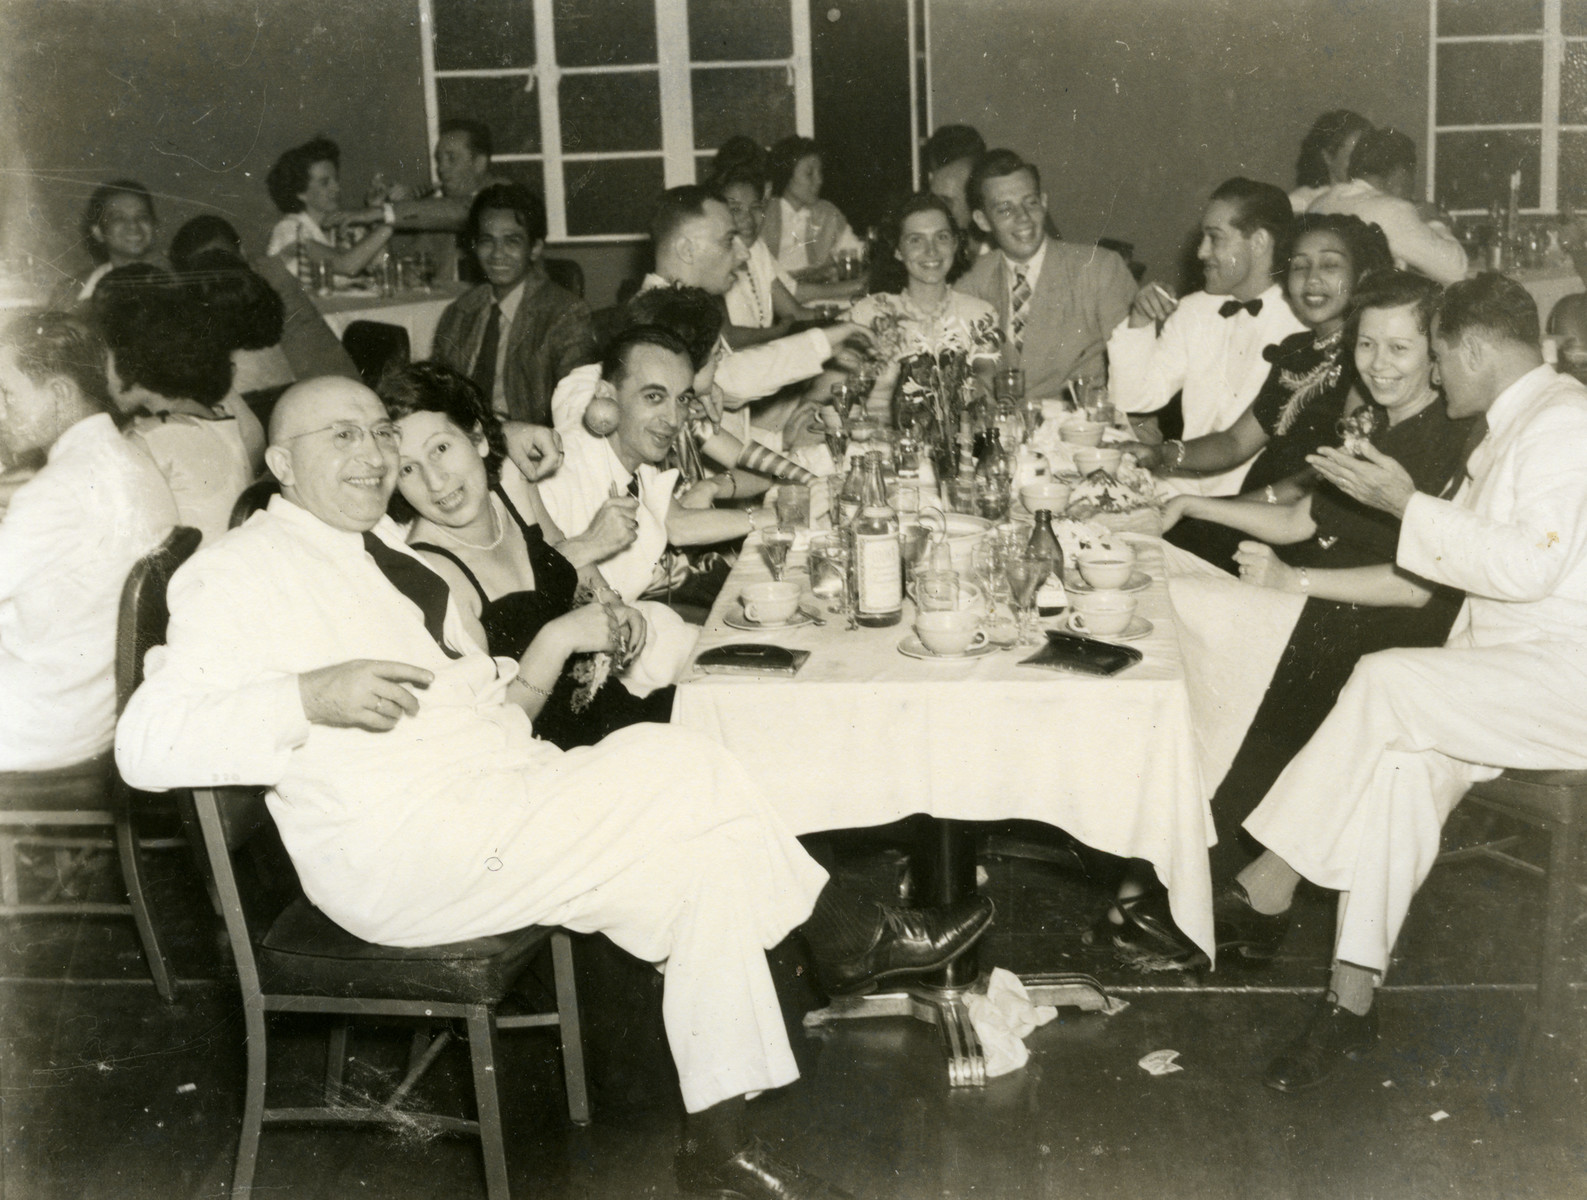 Jewish refugees and Filipinos gather for a celebration in Manila.  Seated at the back of the table are Margot Cassel and Manfred Hecht.  Seated at the front left are Saul Cassel and Mrs. Sueskind.  Seated on the front right are Erna Cassel and Mr. Sueskind.